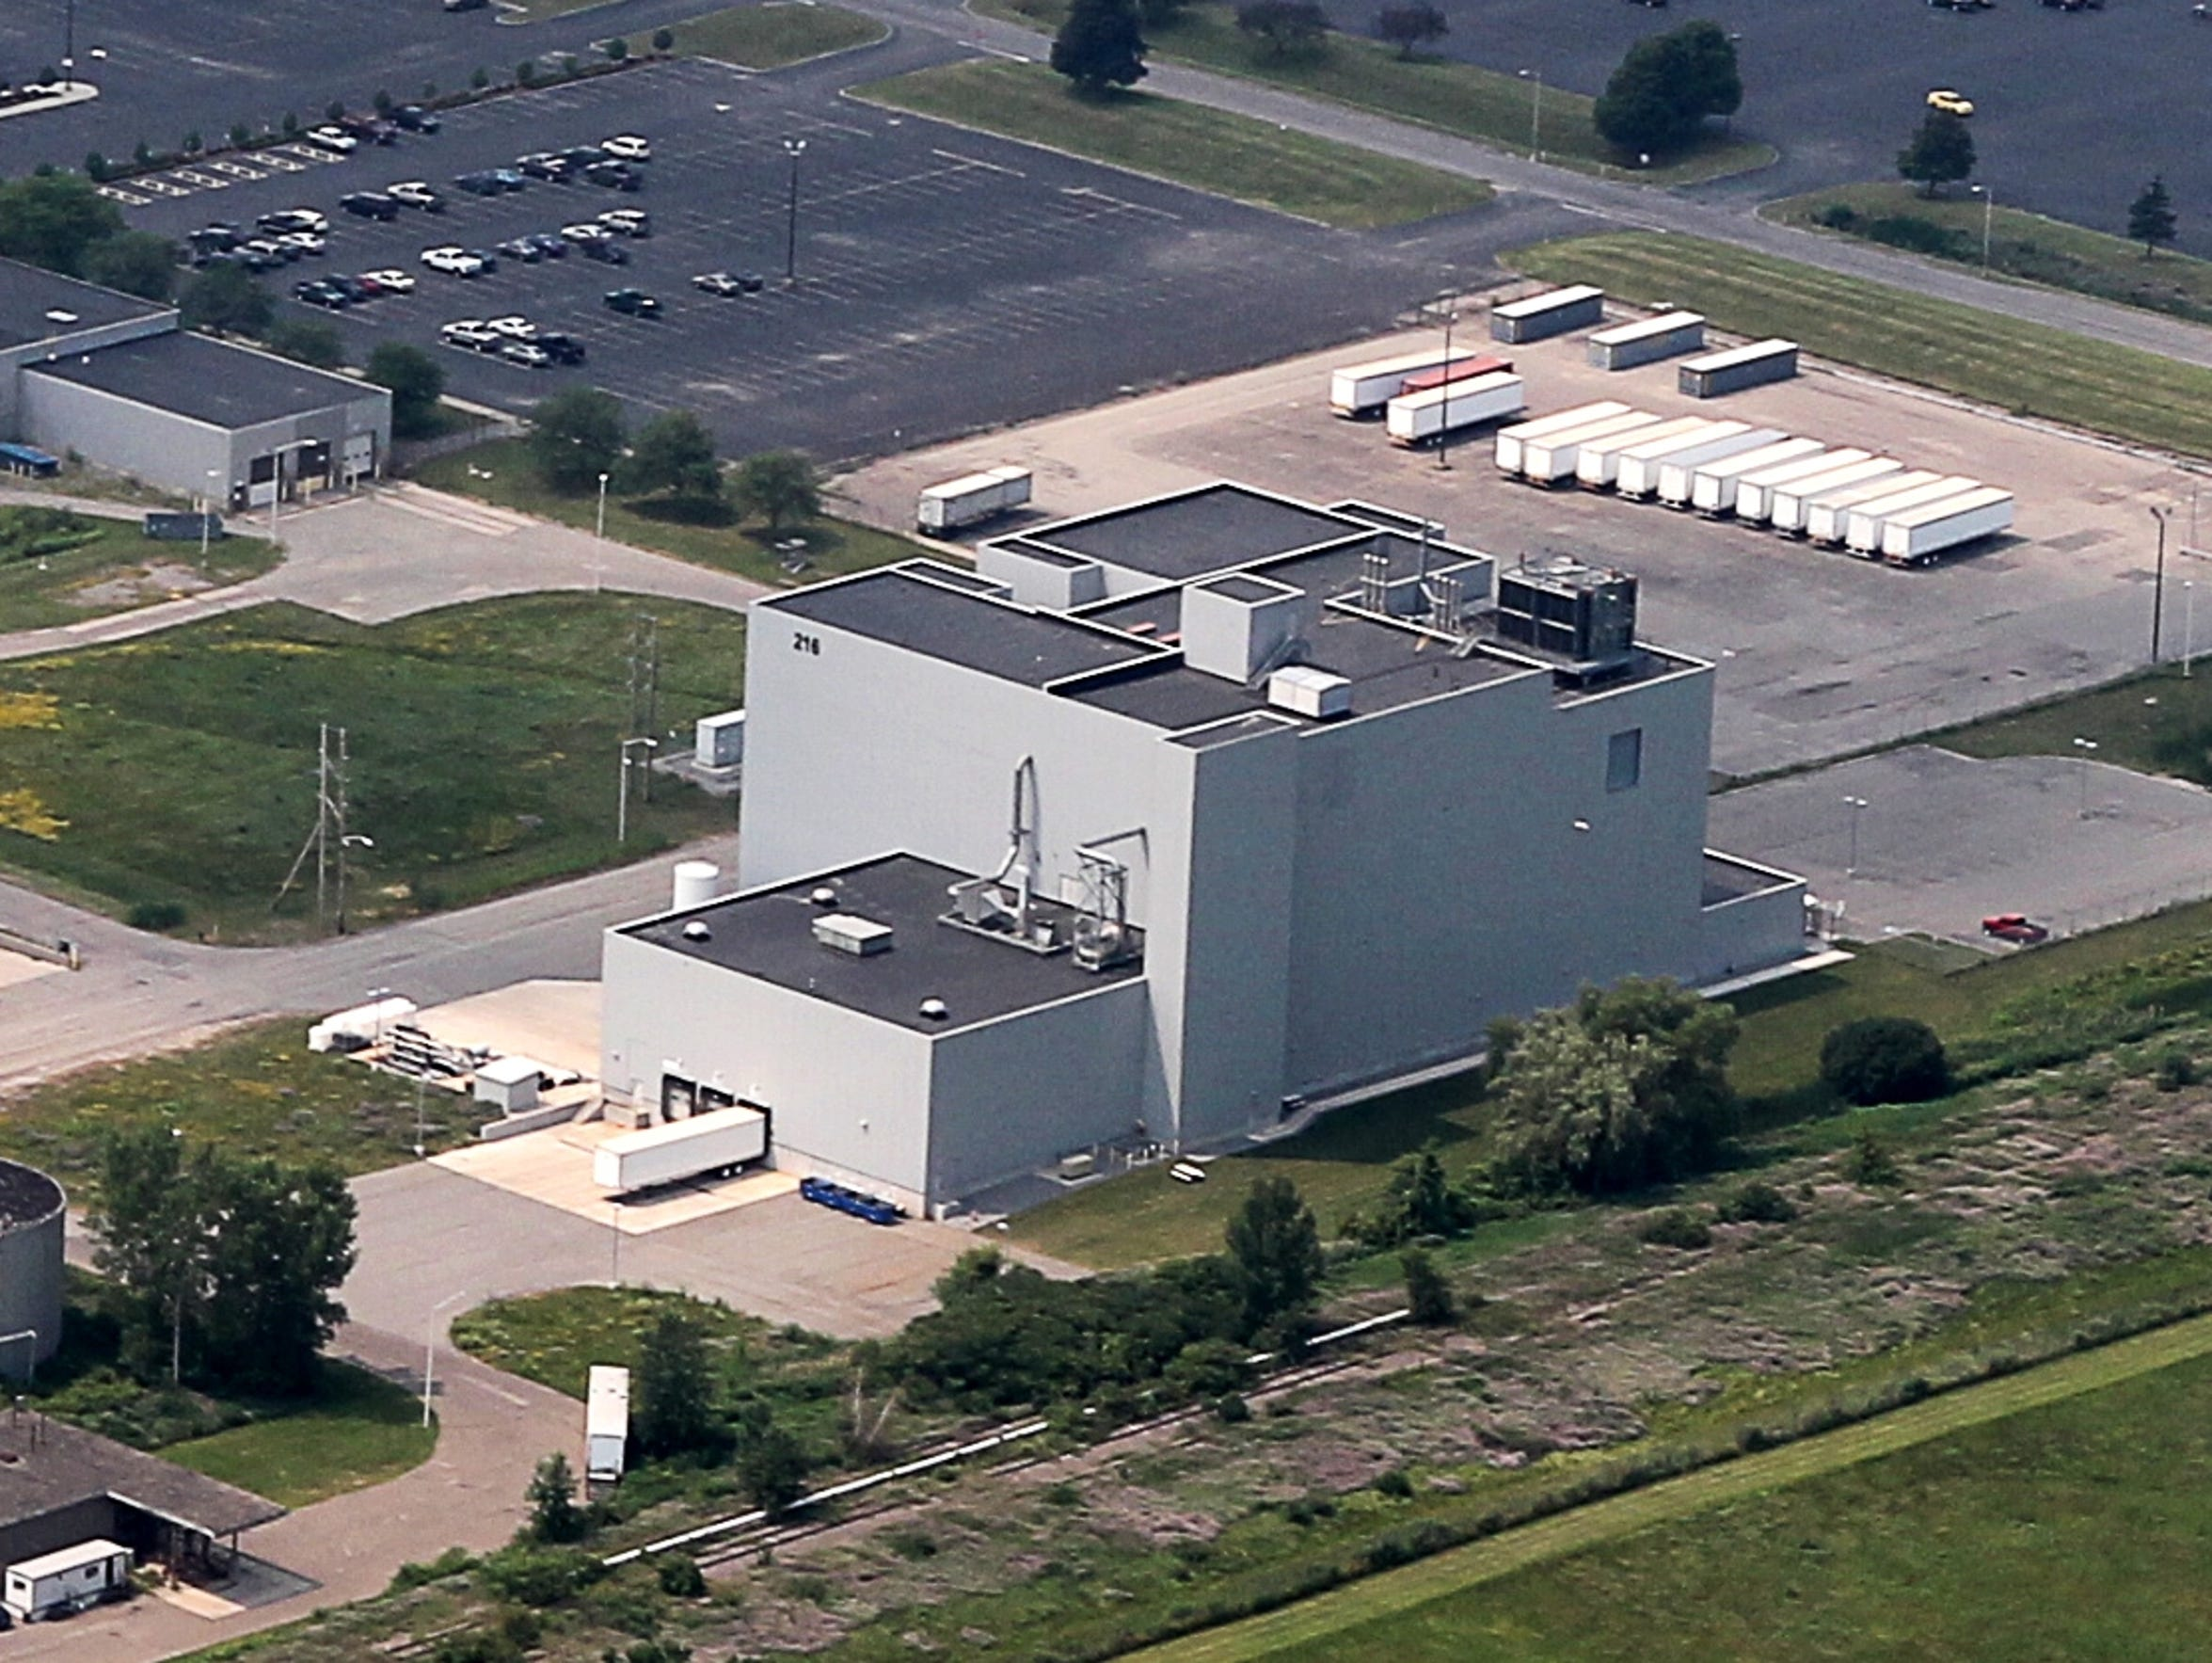 An Aerial View Of Part Of Xerox Corp's Operations